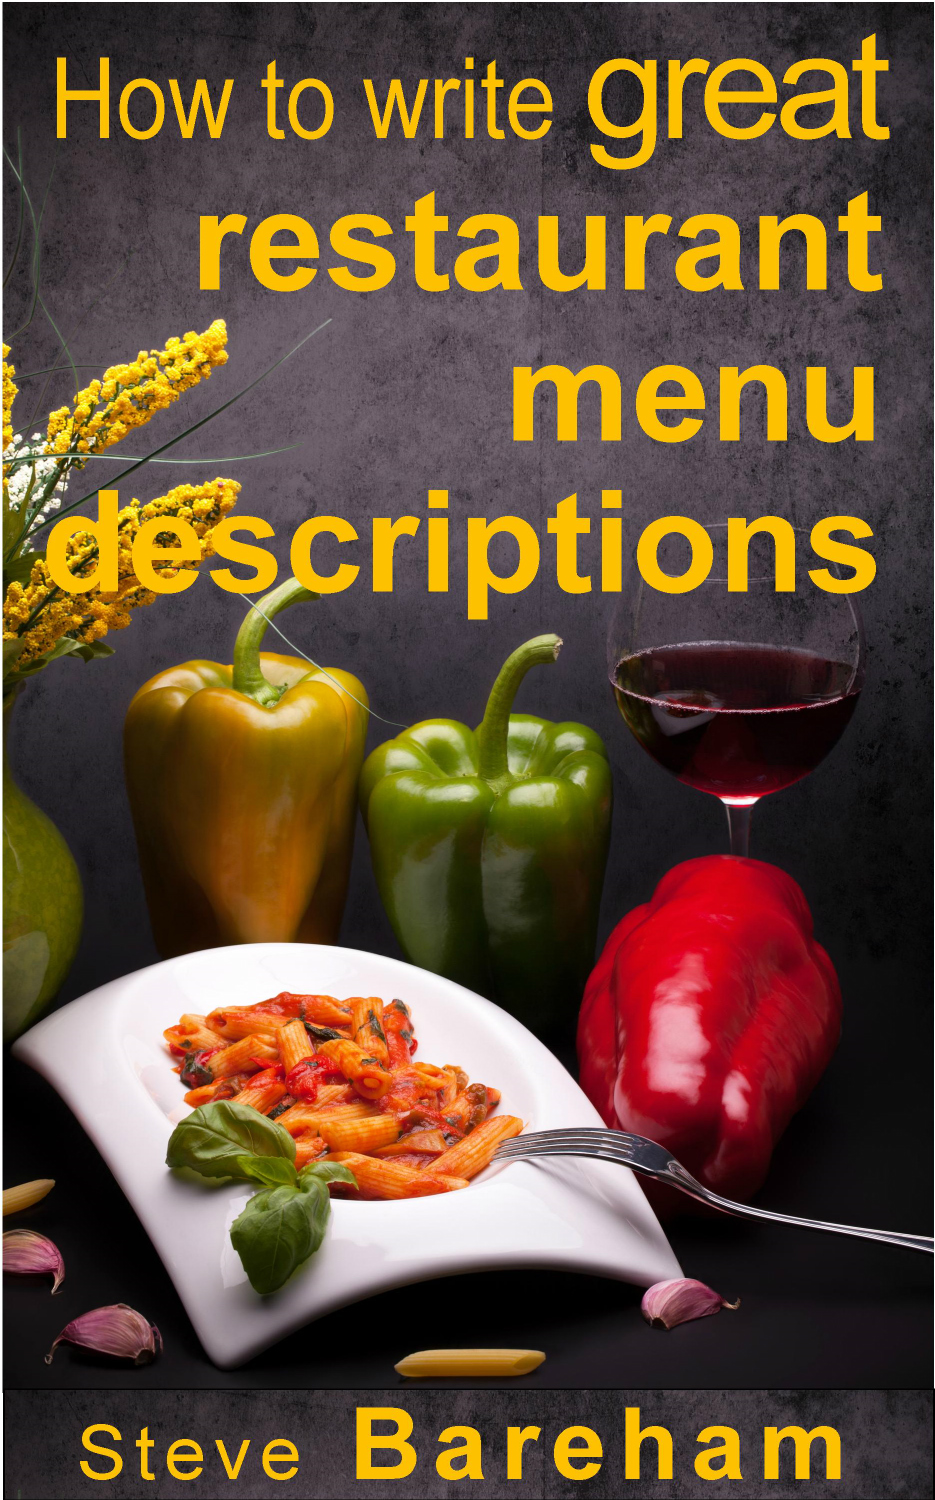 How to write great restaurant menu descriptions